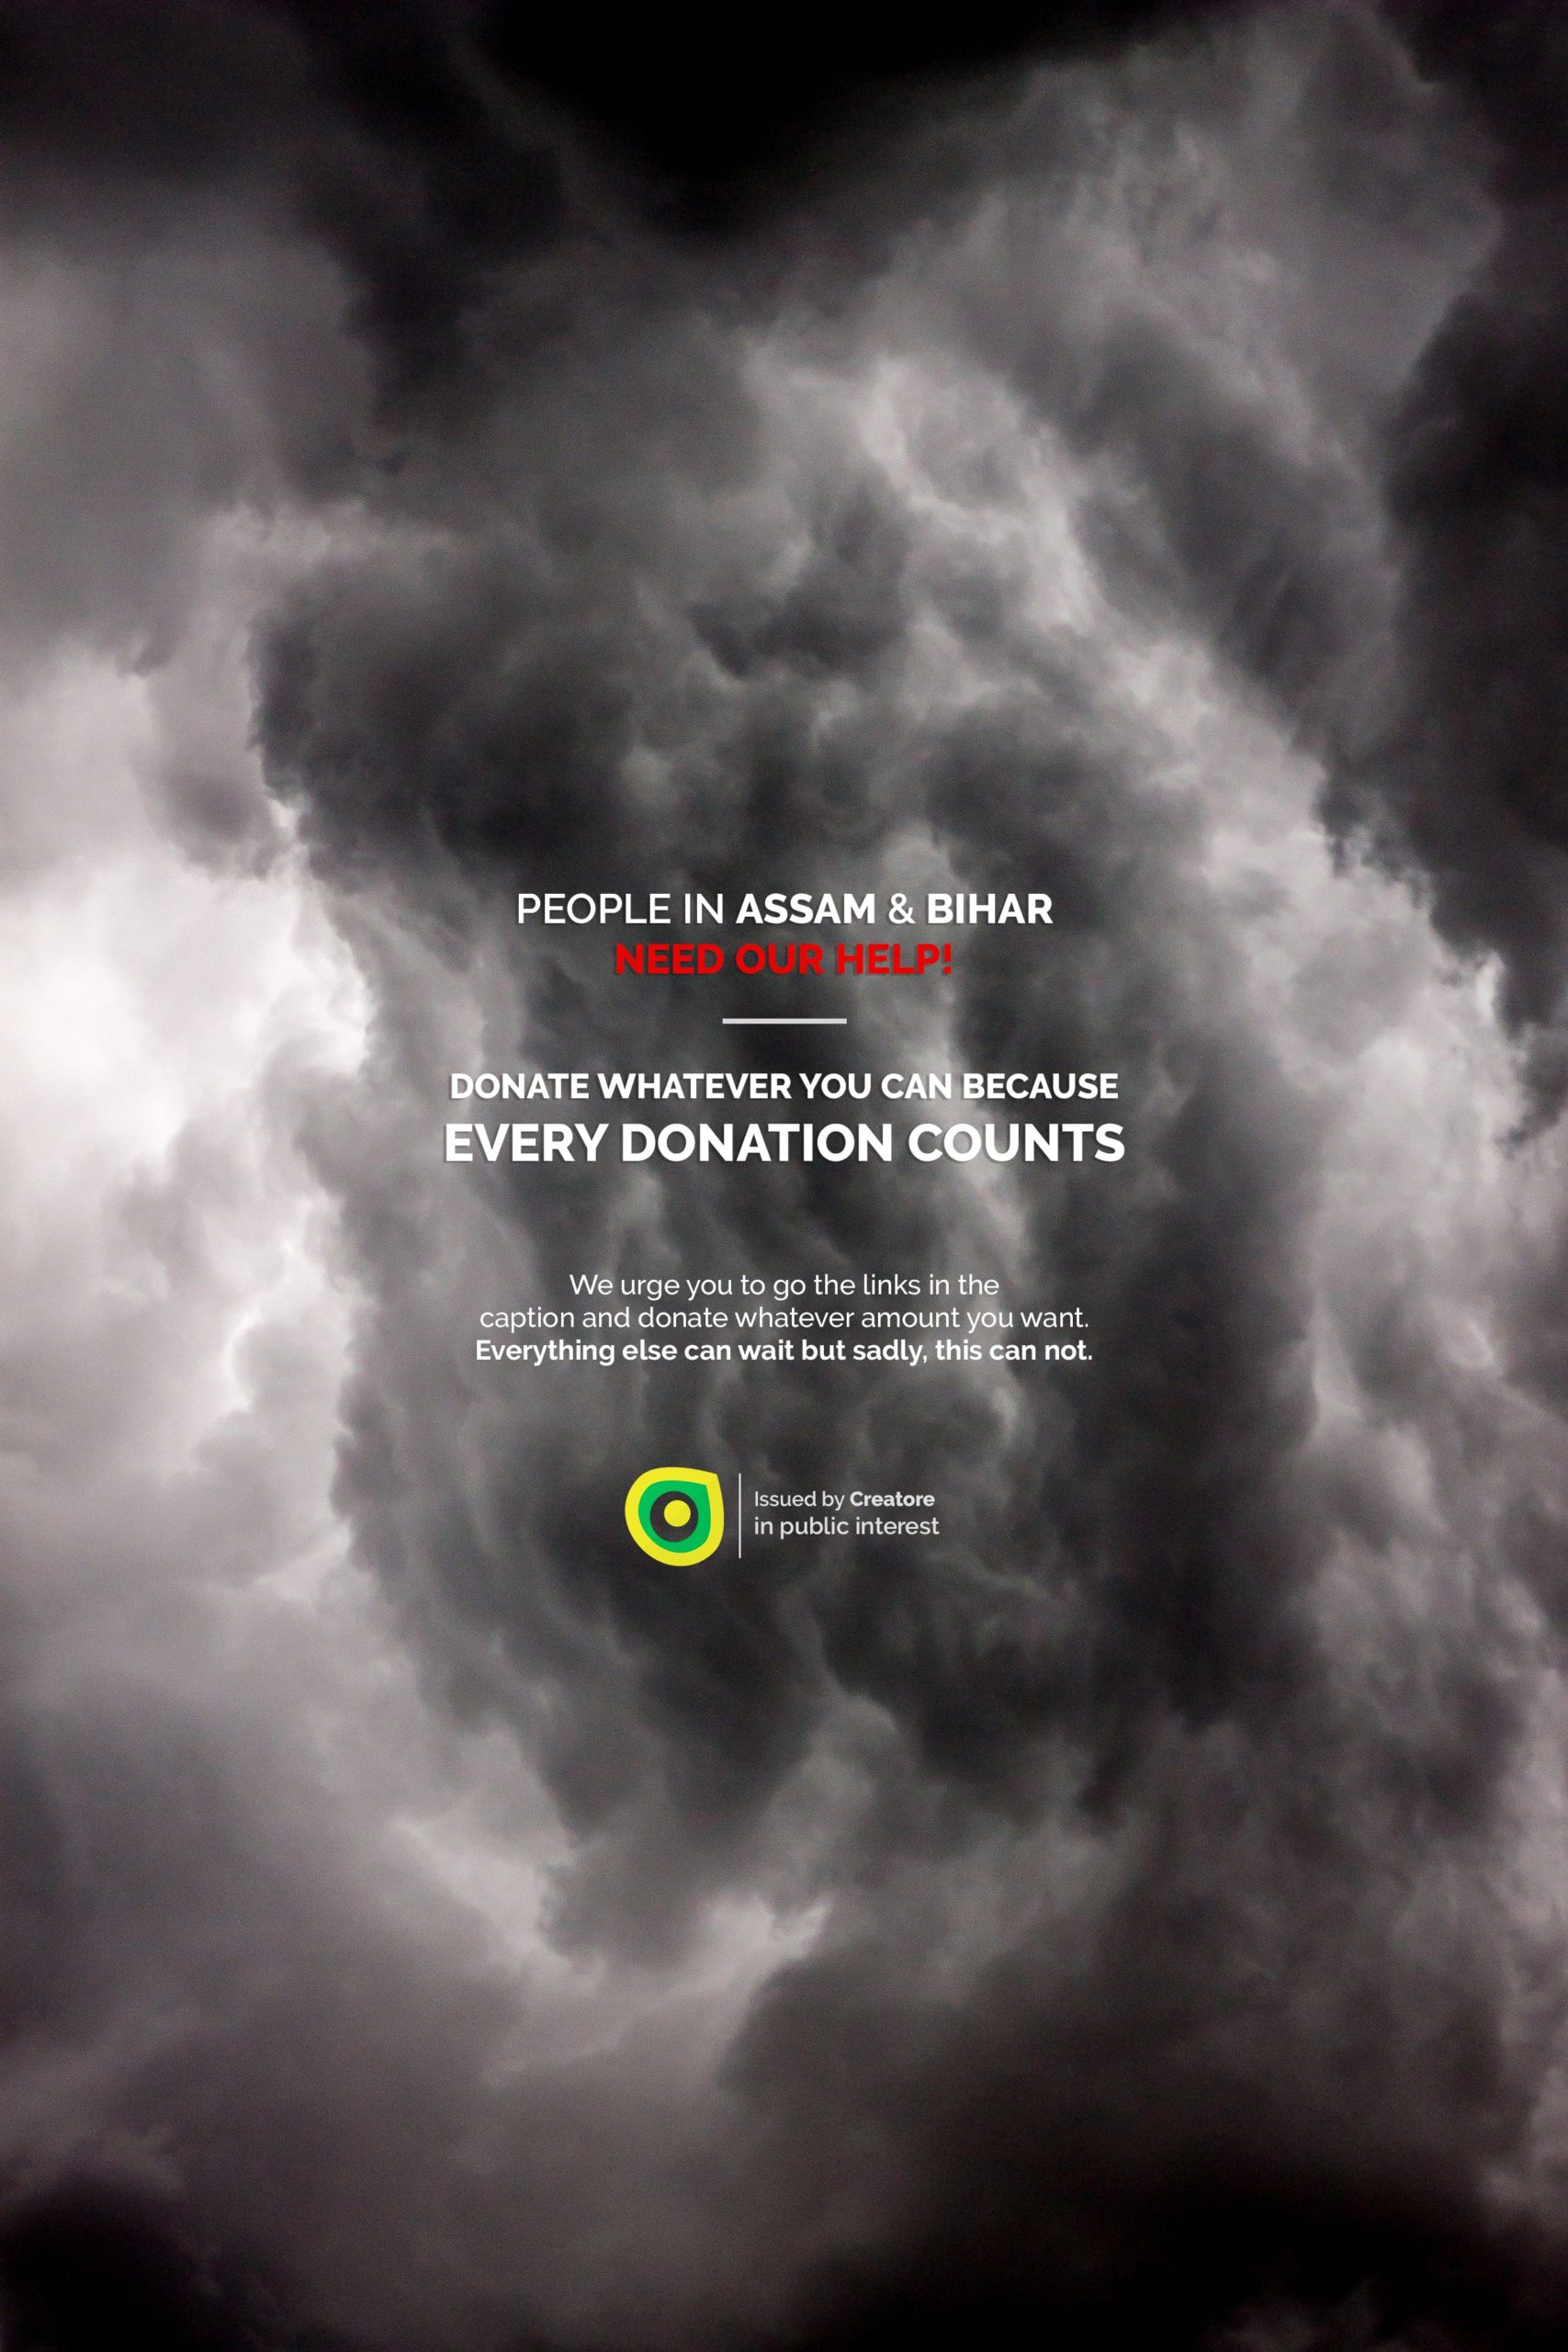 Creative Advertising and Marketing Agency Assam Floods Topical Post